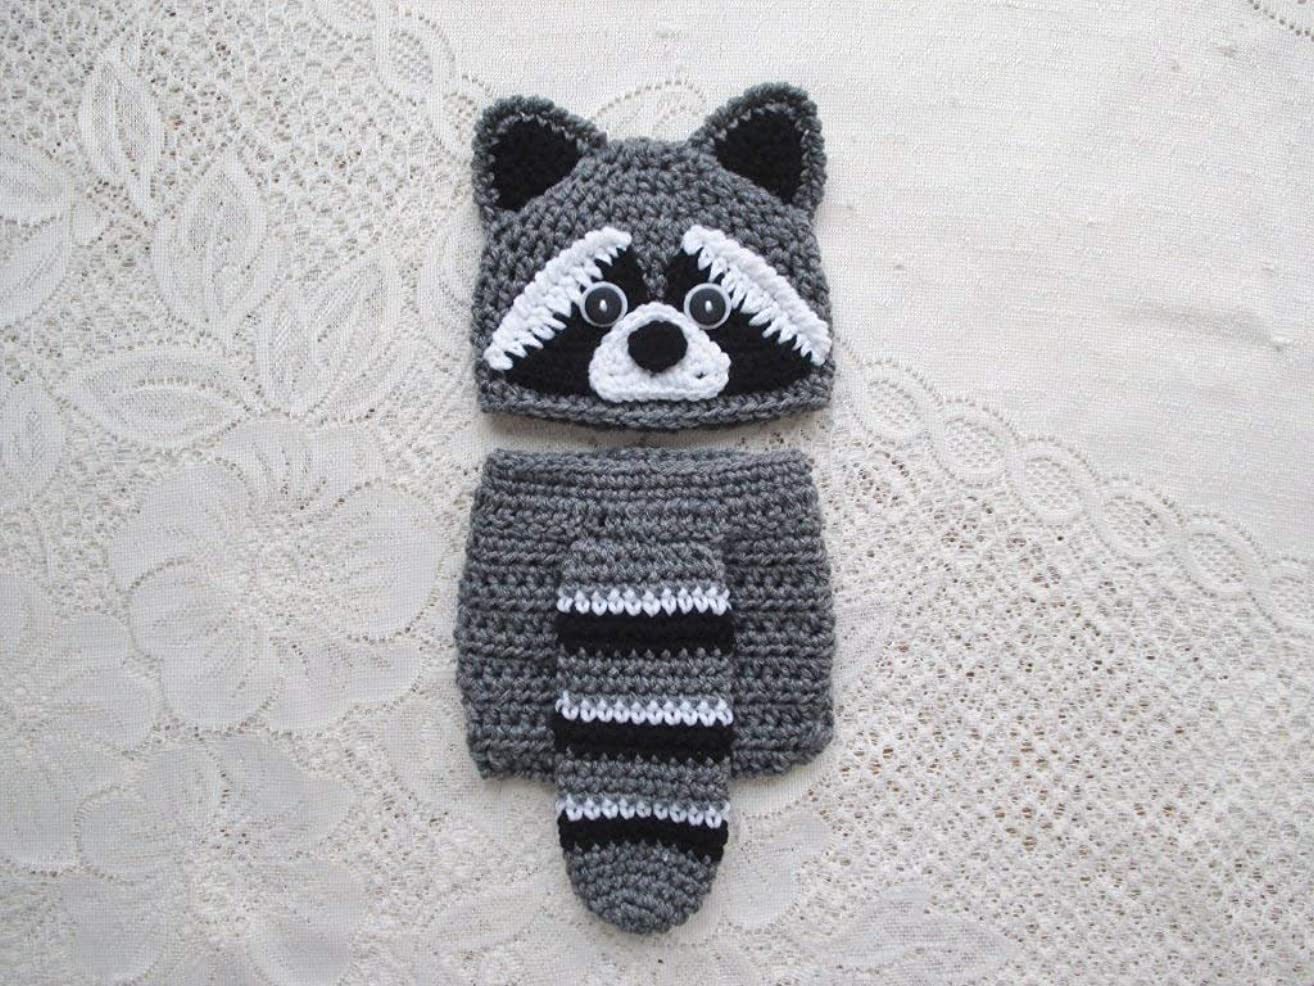 Baby Raccoon Crochet Hat and Diaper Cover Set - Baby Photo Prop - Baby Shower Gift - Available in 0 to 24 Months